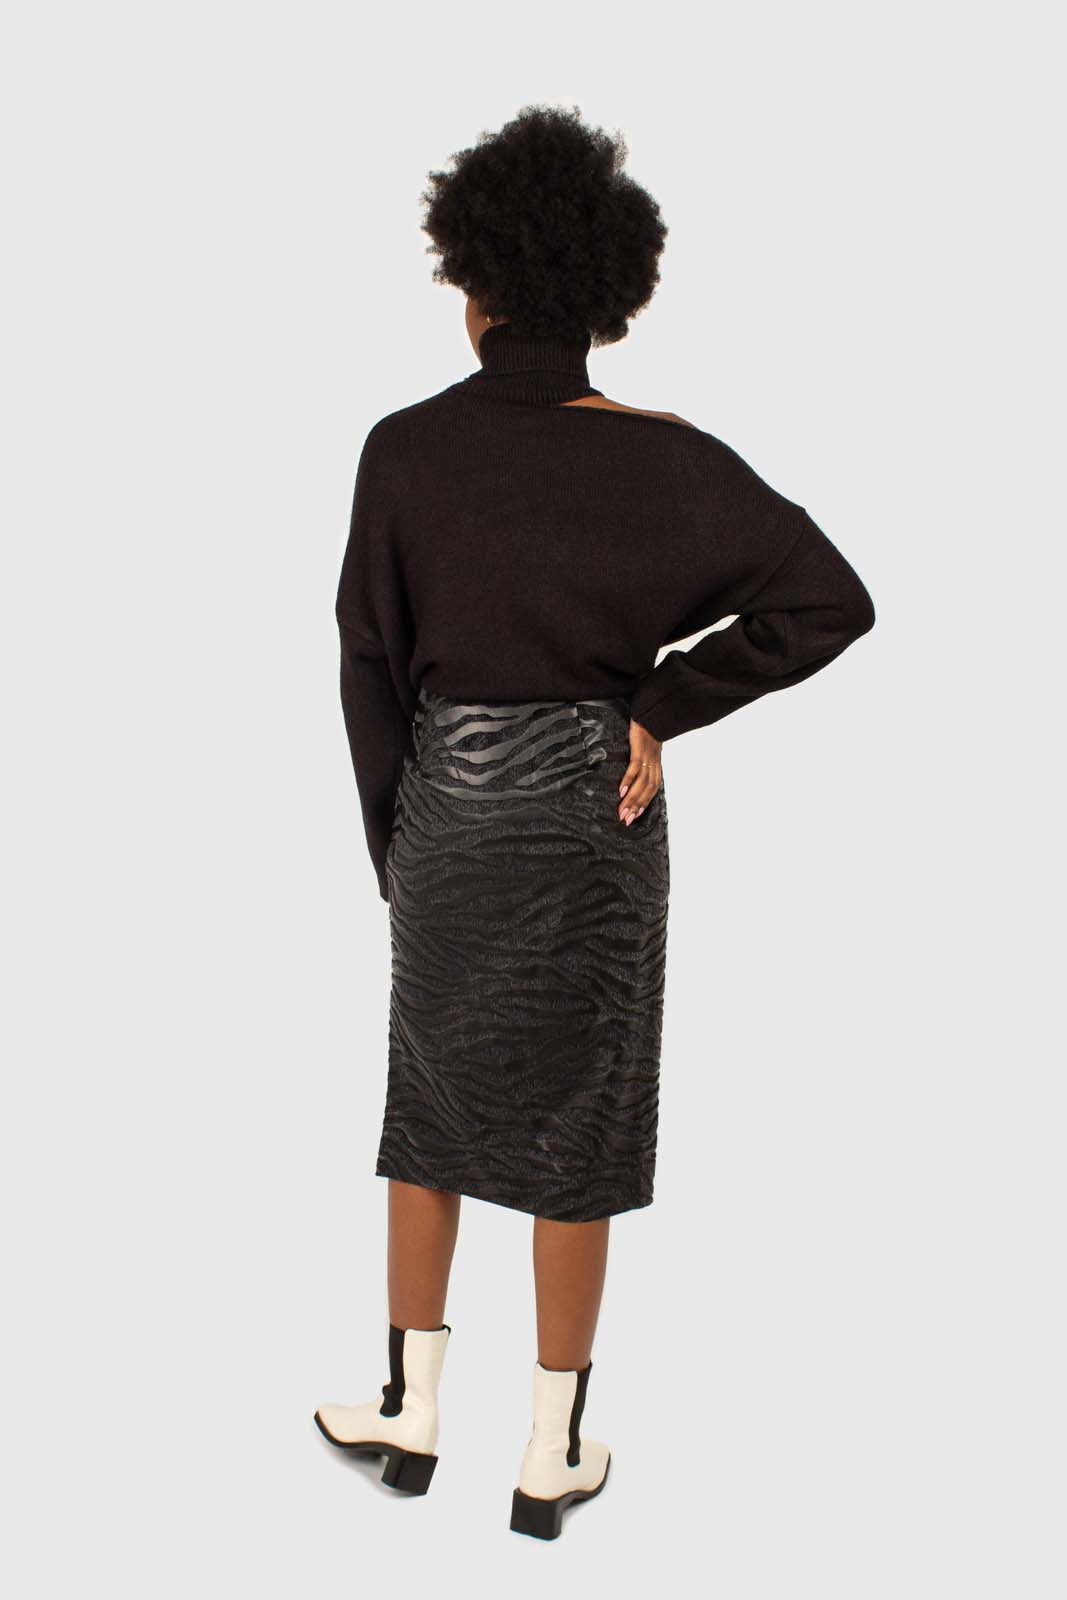 Charcoal vegan horse hair and leather pencil skirt2